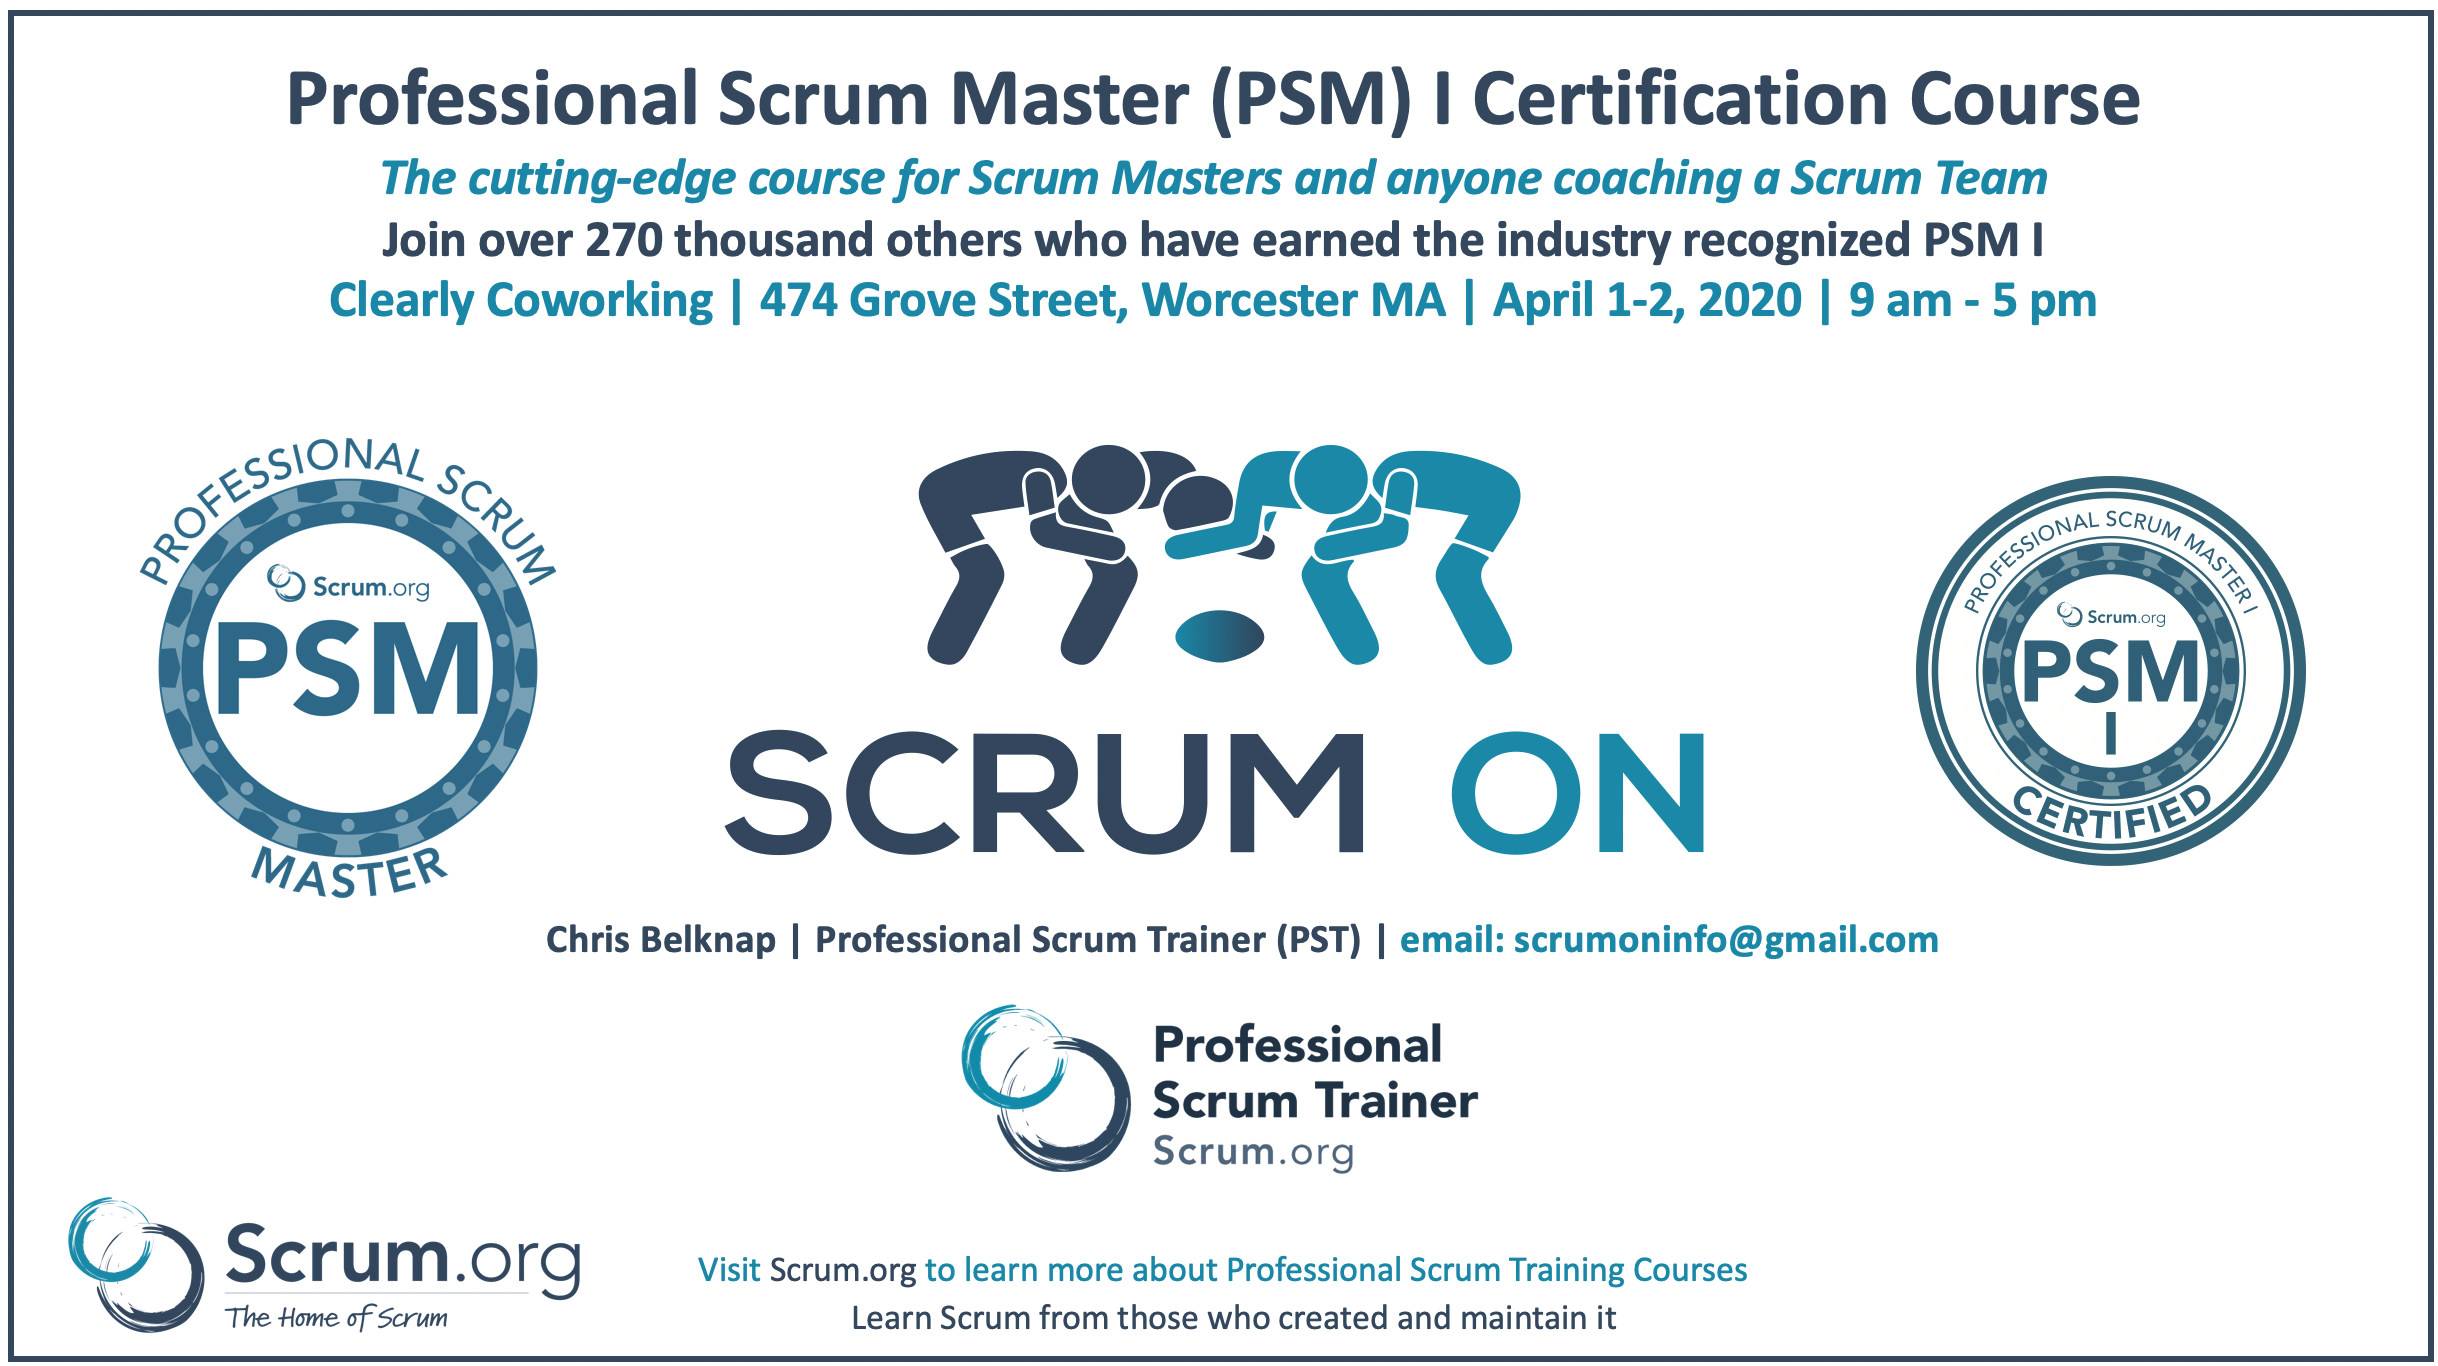 Professional Scrum Master PSM I Worcester MA